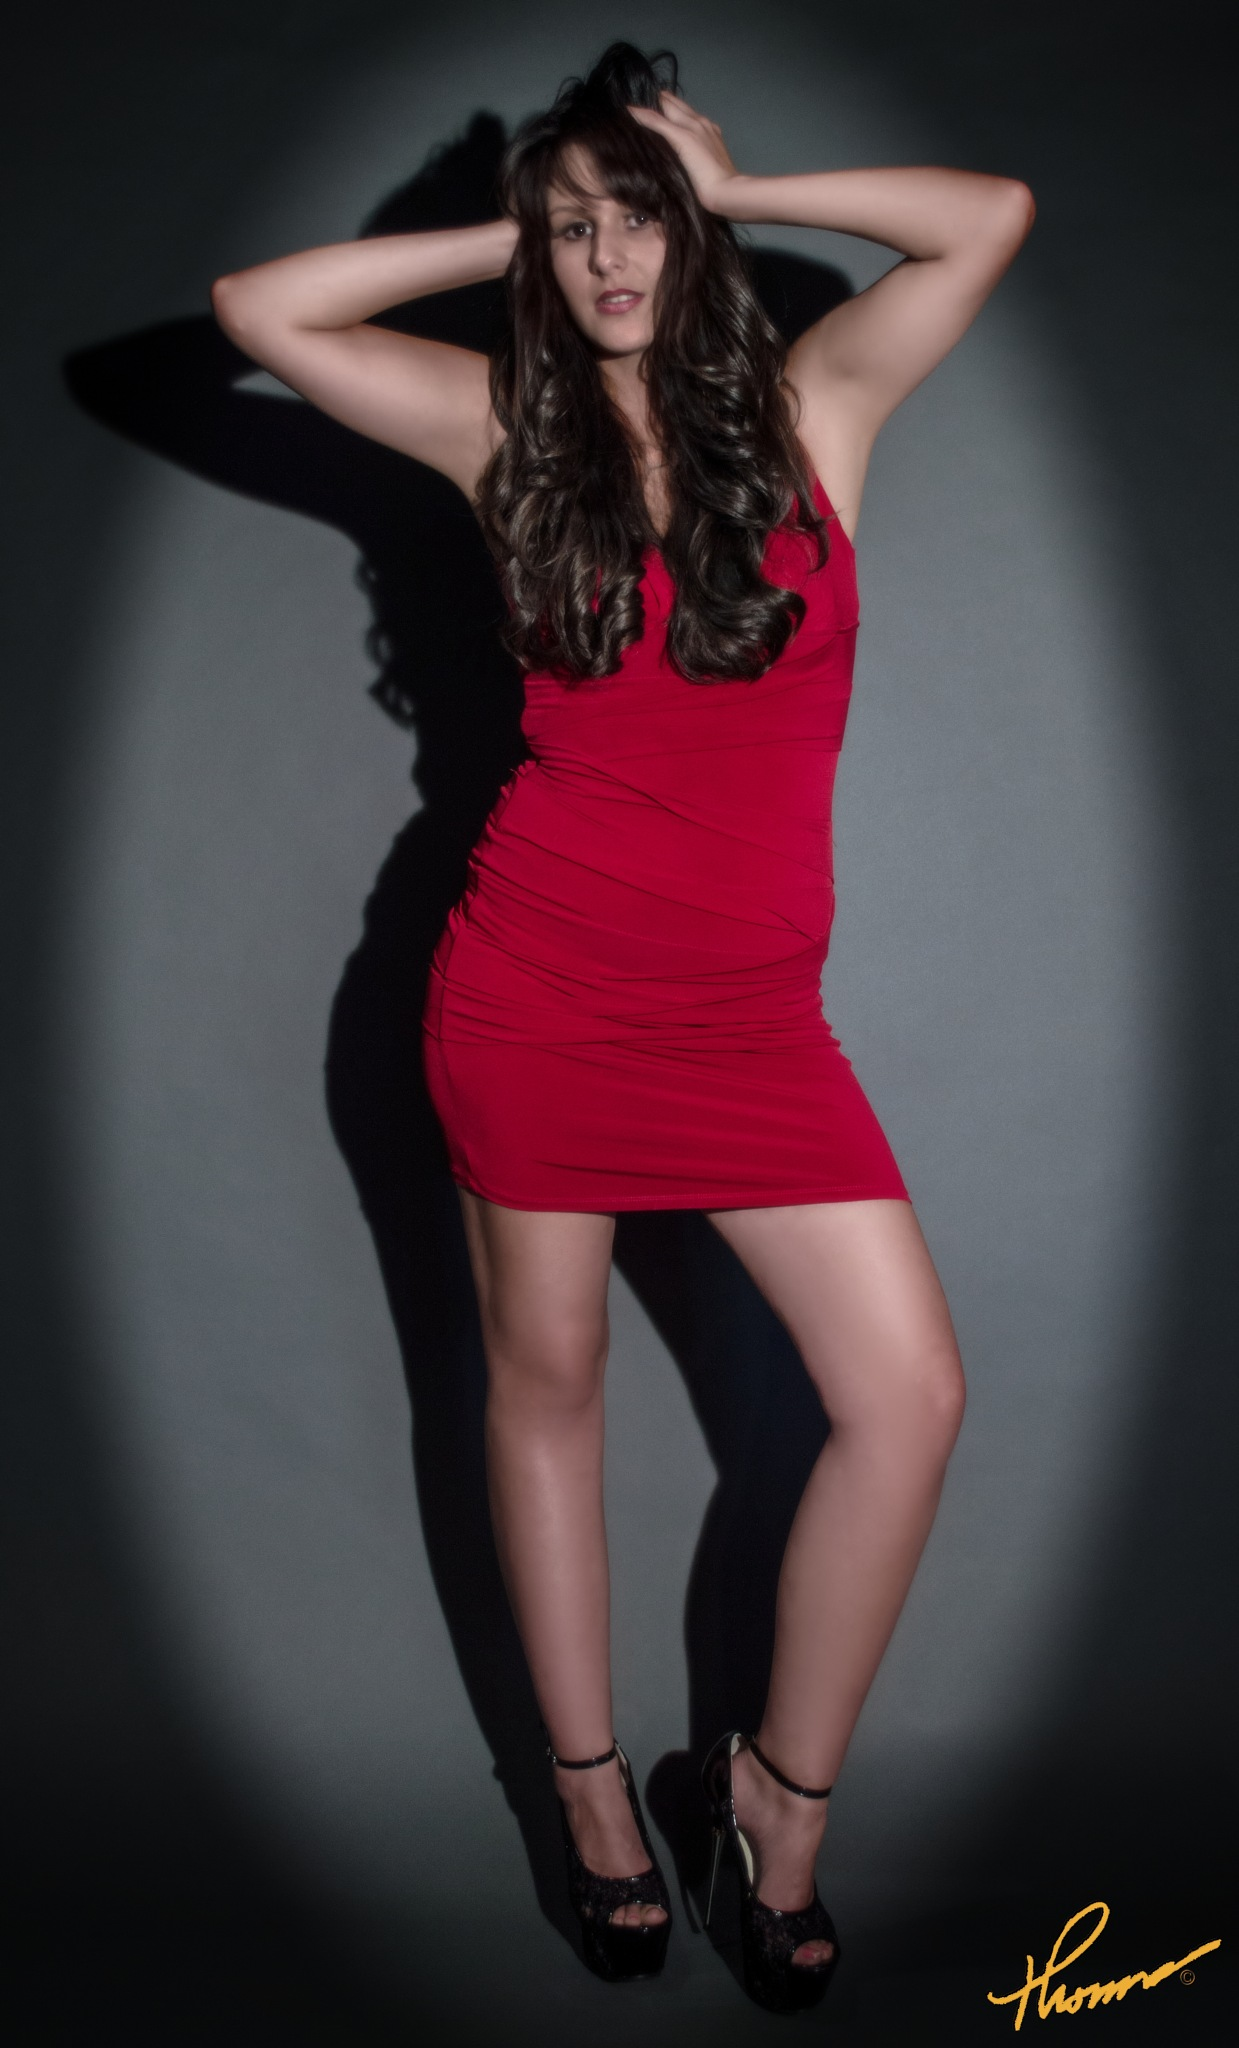 High Fashion Red Dress Photo by Thomas H Black Photography by Shameron Nicole Model